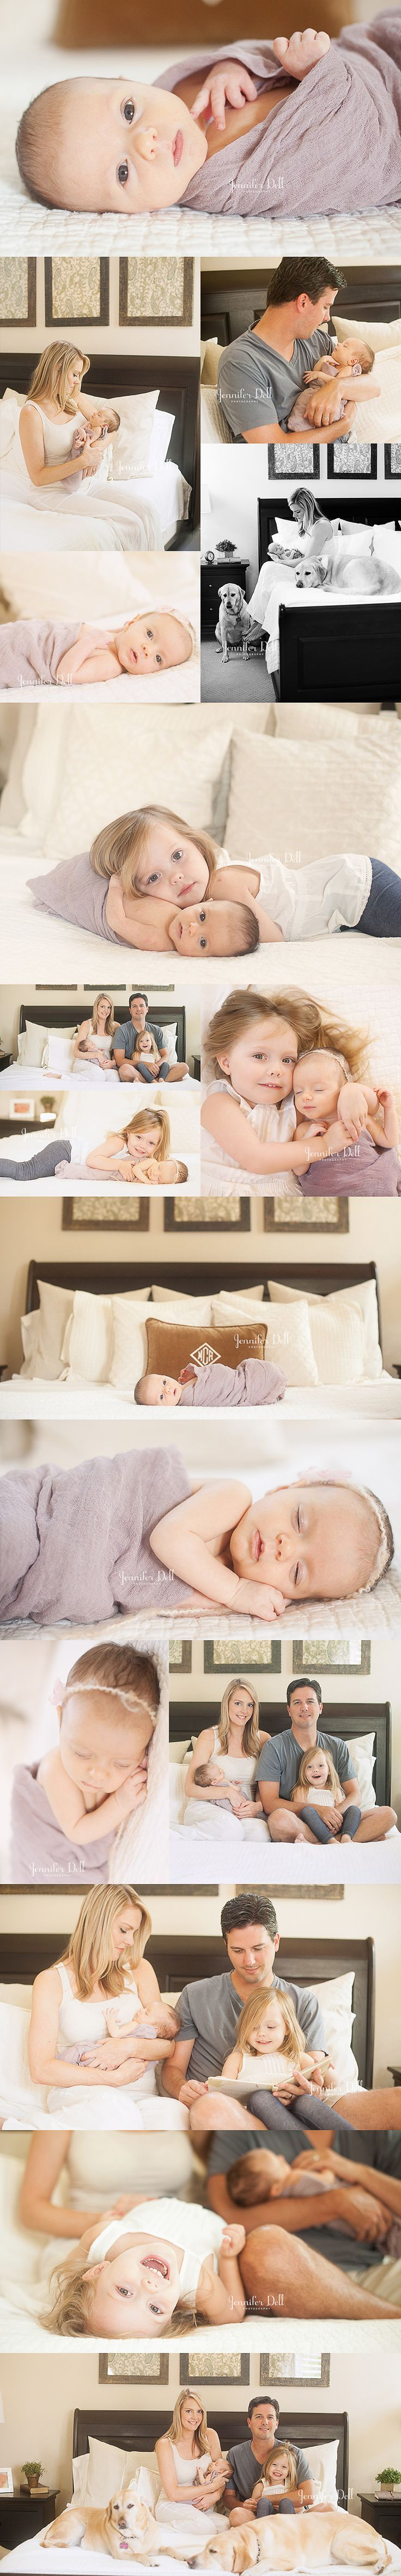 1425 best newborn and baby ideas images on Pinterest